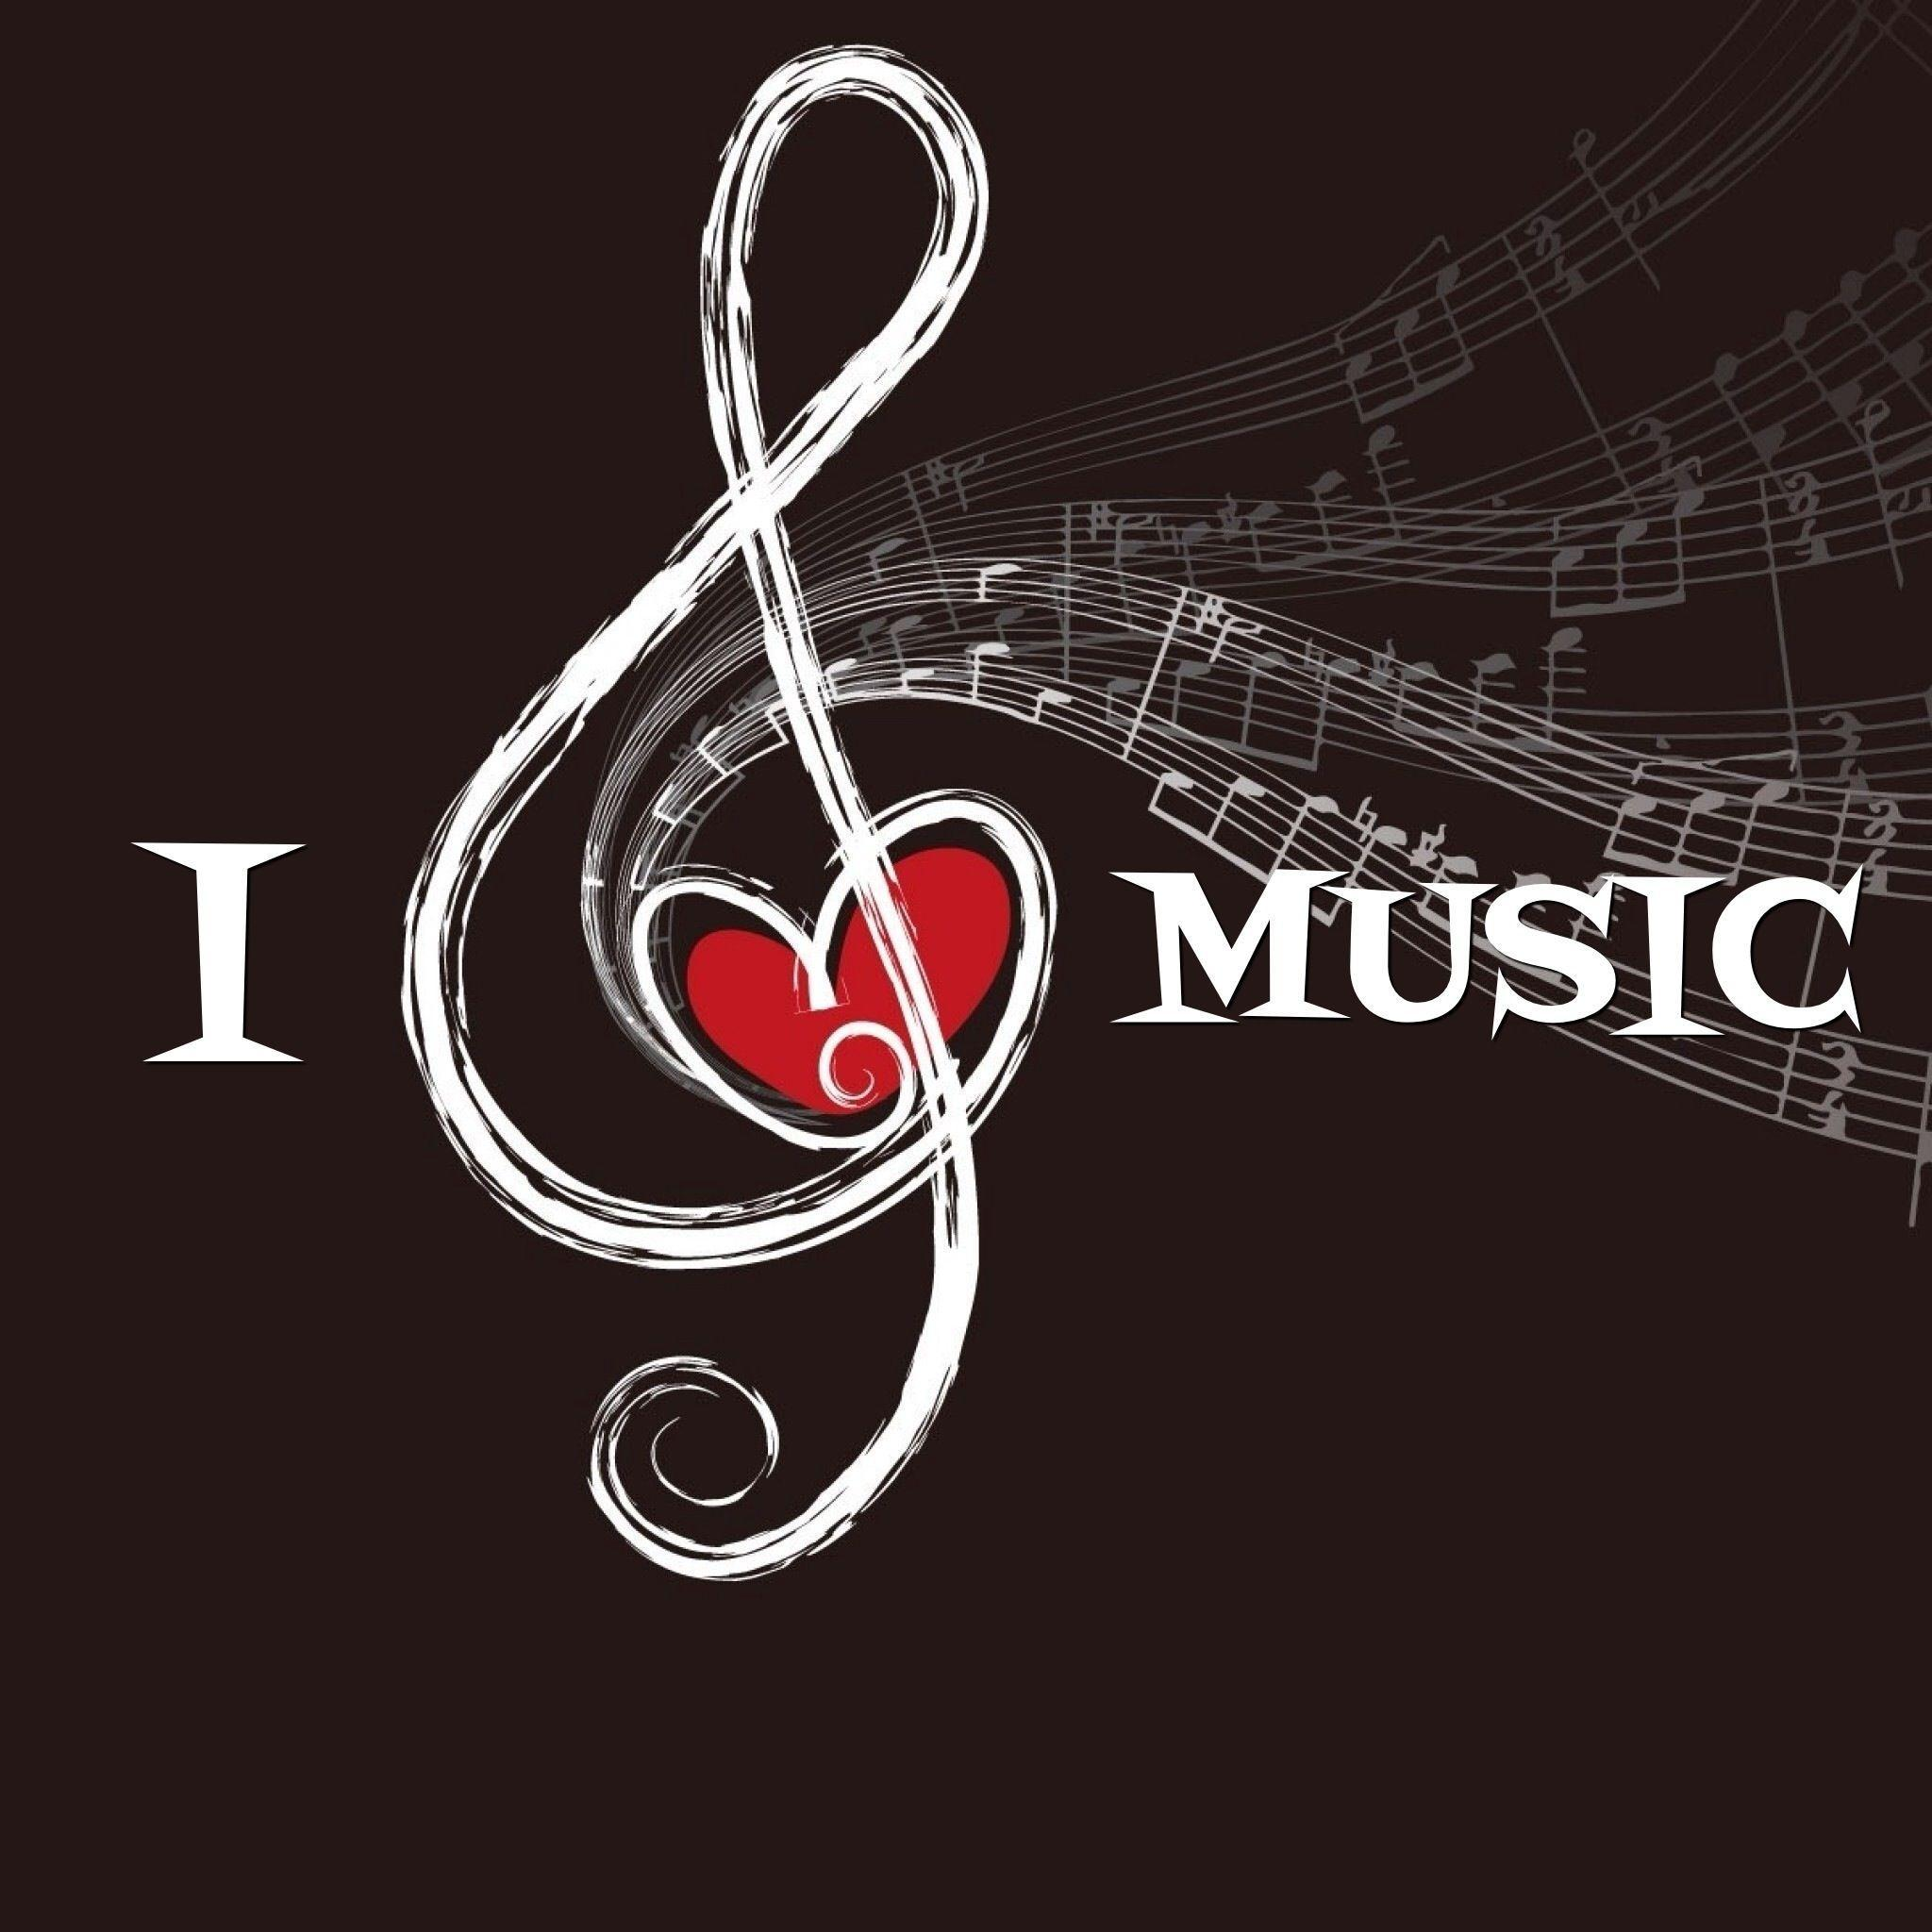 Musical Love Quotes: Music Quotes Wallpapers